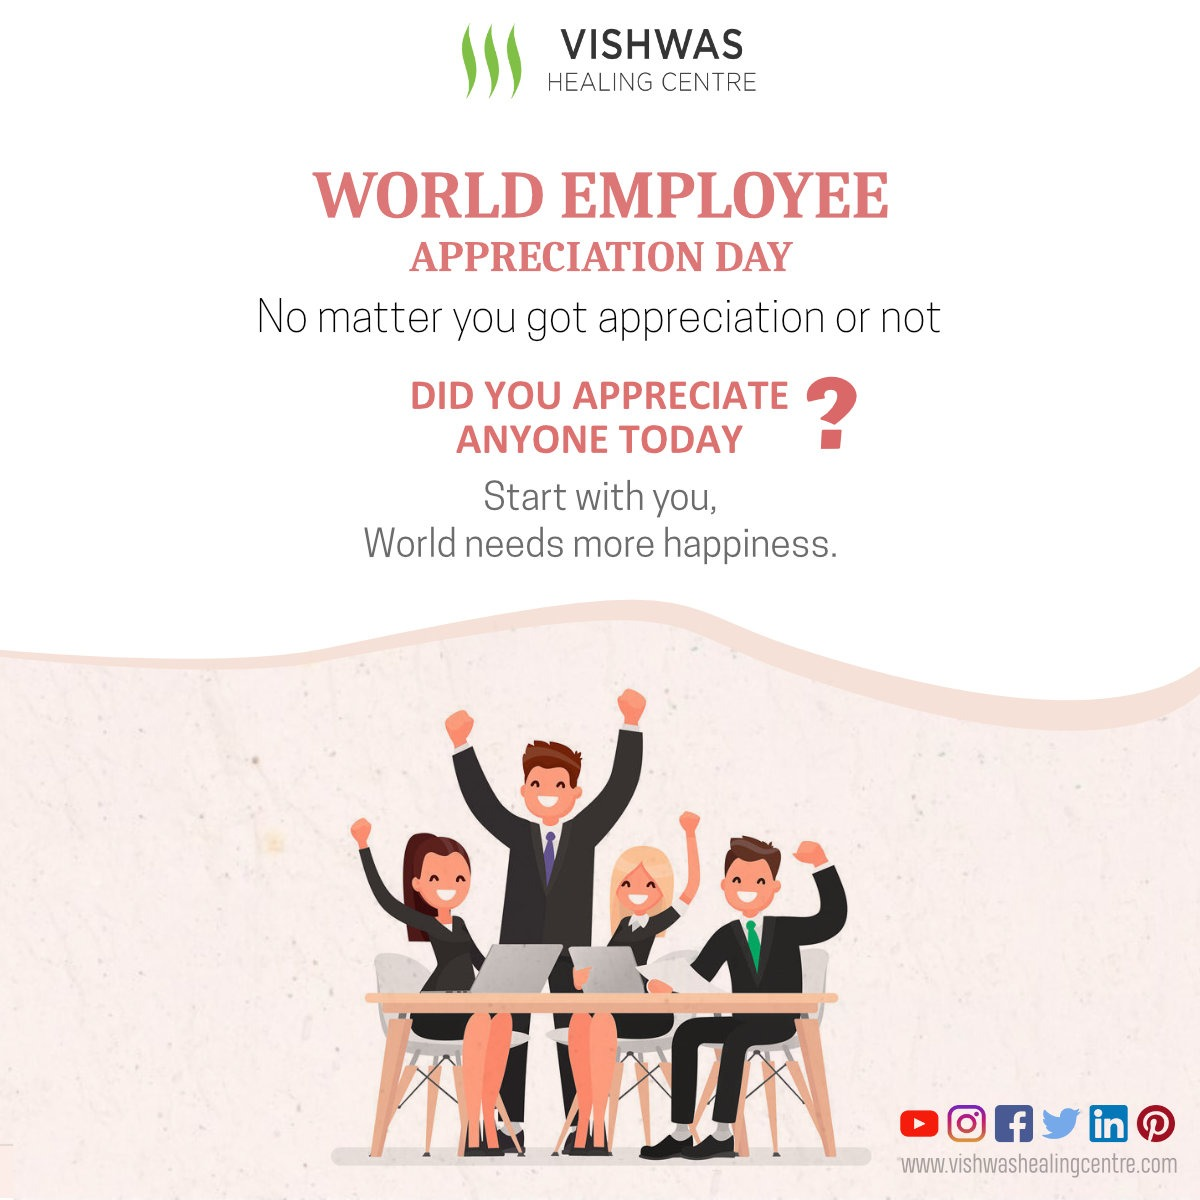 #HappyWorldEmployeeAppreciationDay #WorldEmployeeAppreciationDay #EmployeeAppreciationDay #Happiness #Gratitude #Relationship #Loyalty #Respect #Environment #Feelings #Appreciation